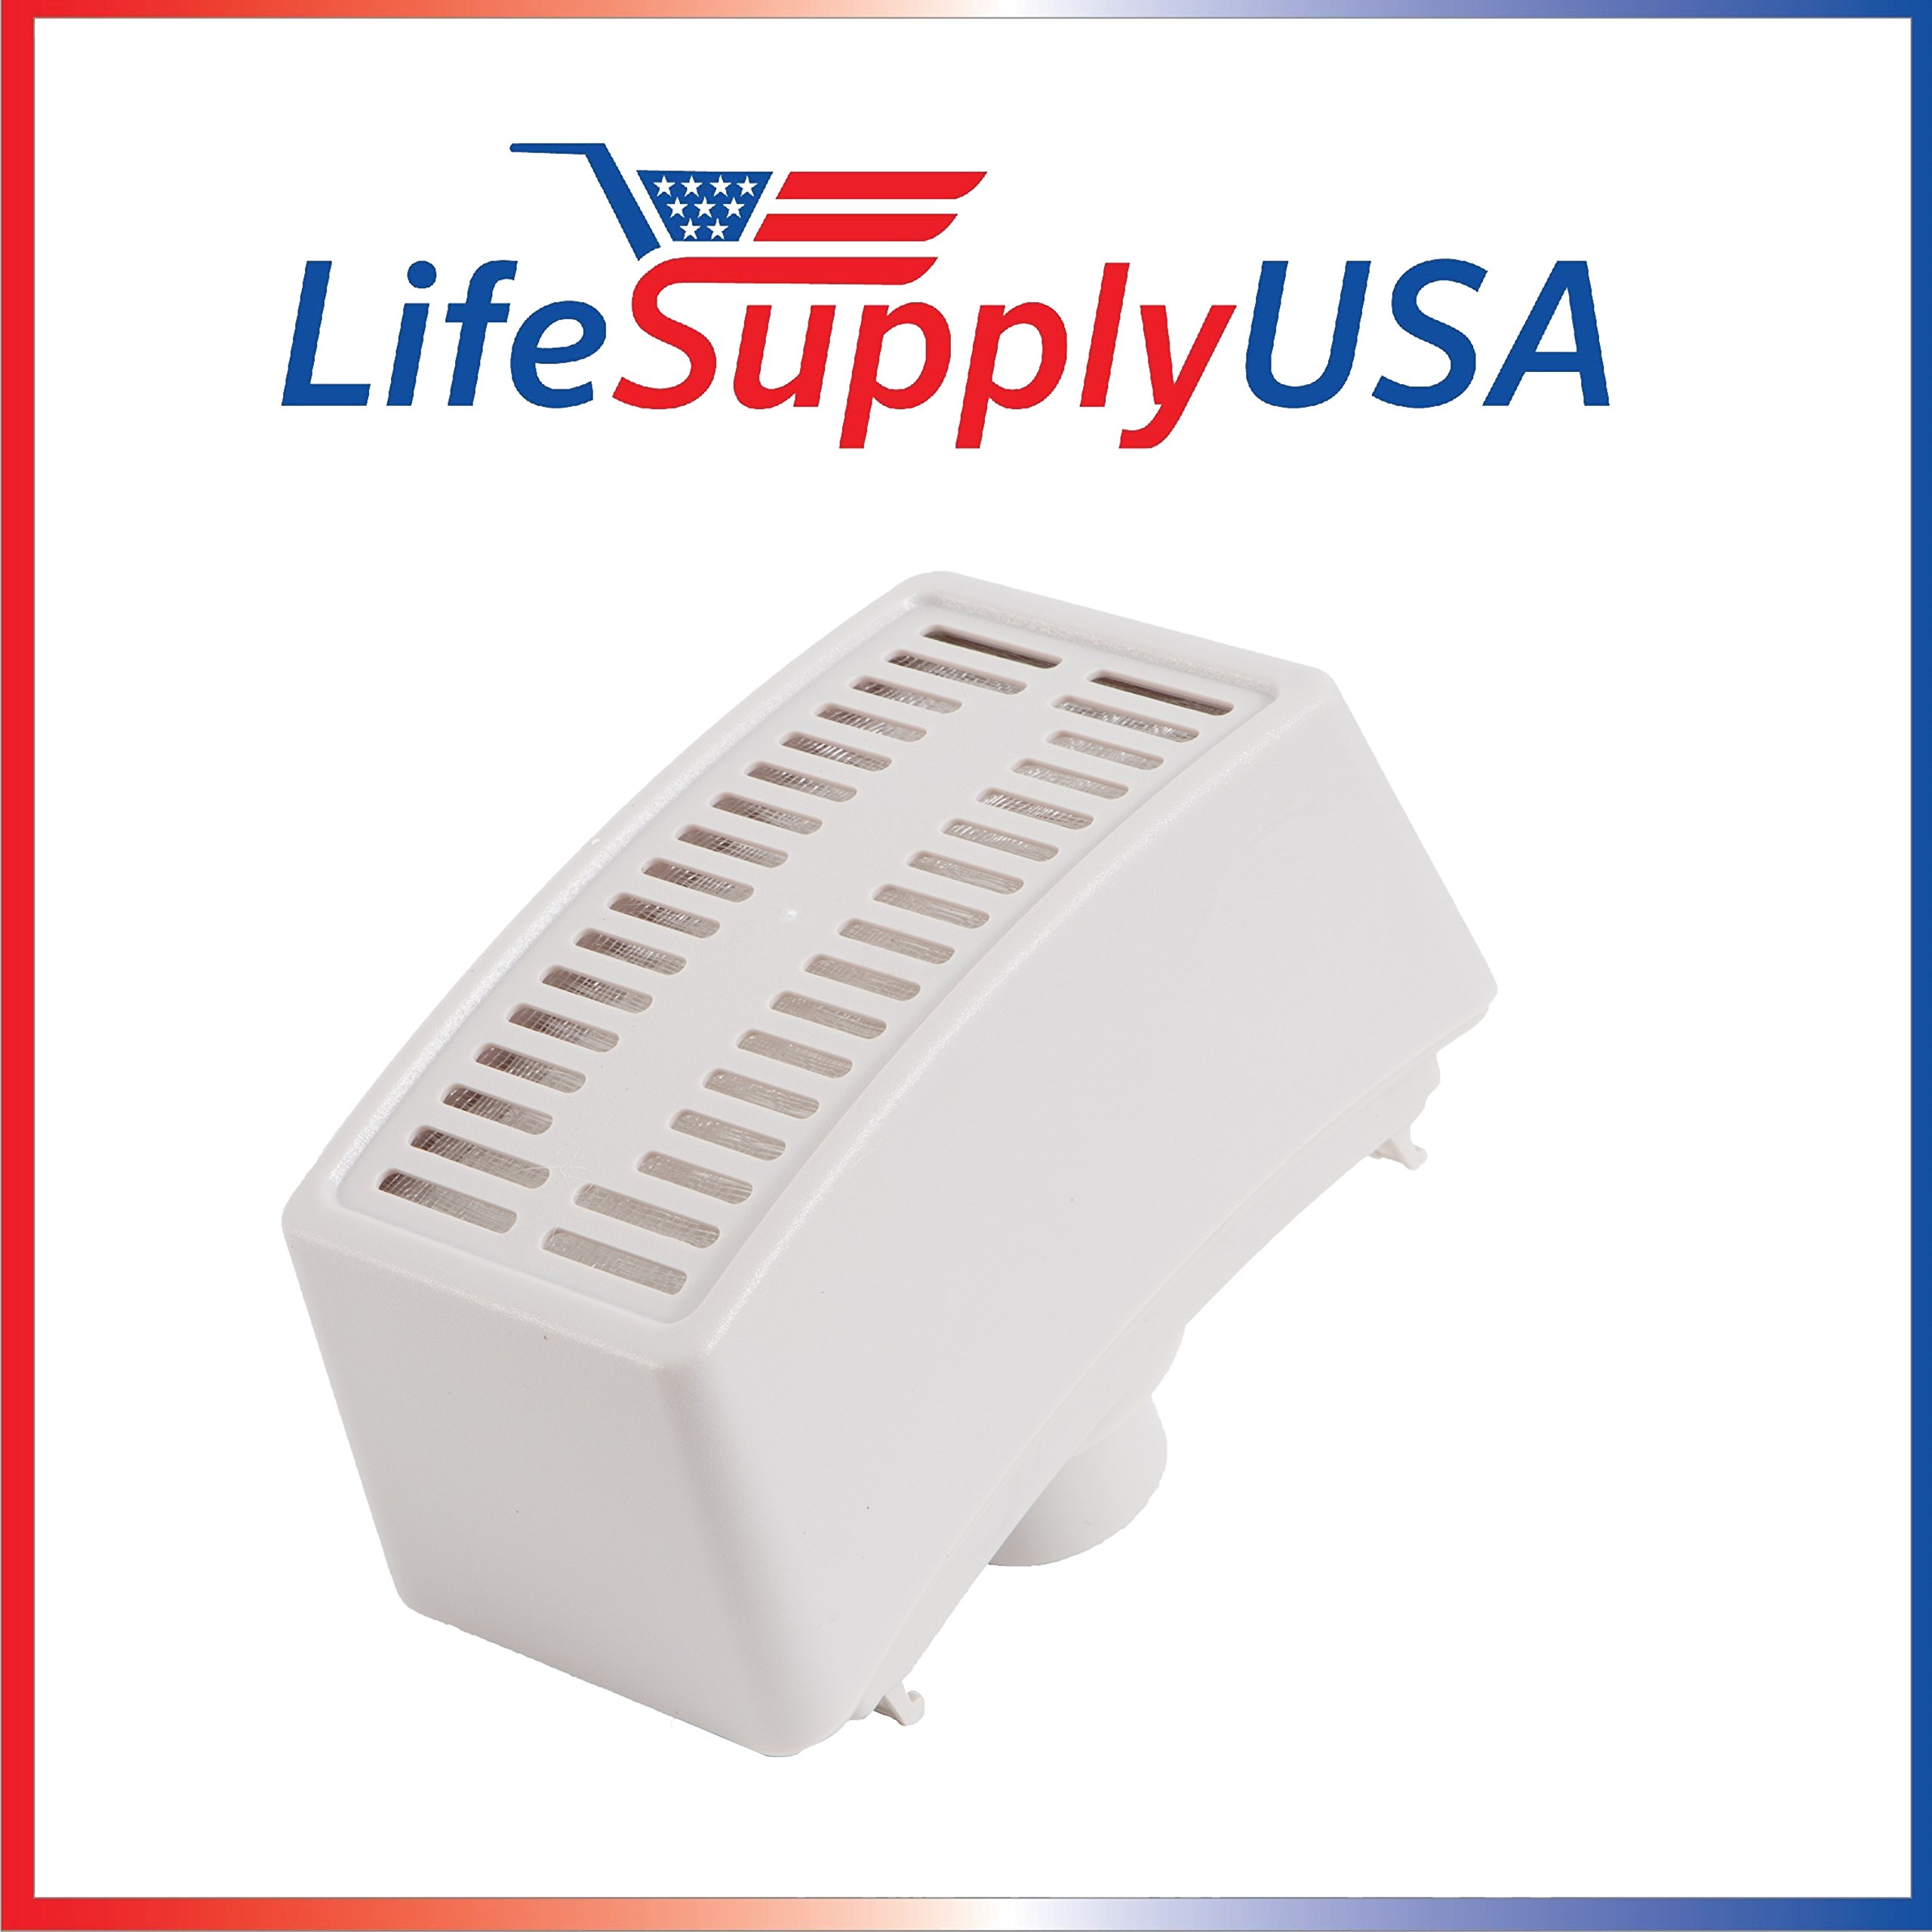 2 Pack HEPA Filter to fit Aerus Electrolux Guardian/Lux 9000 HEPA 47404 by LifeSupplyUSA